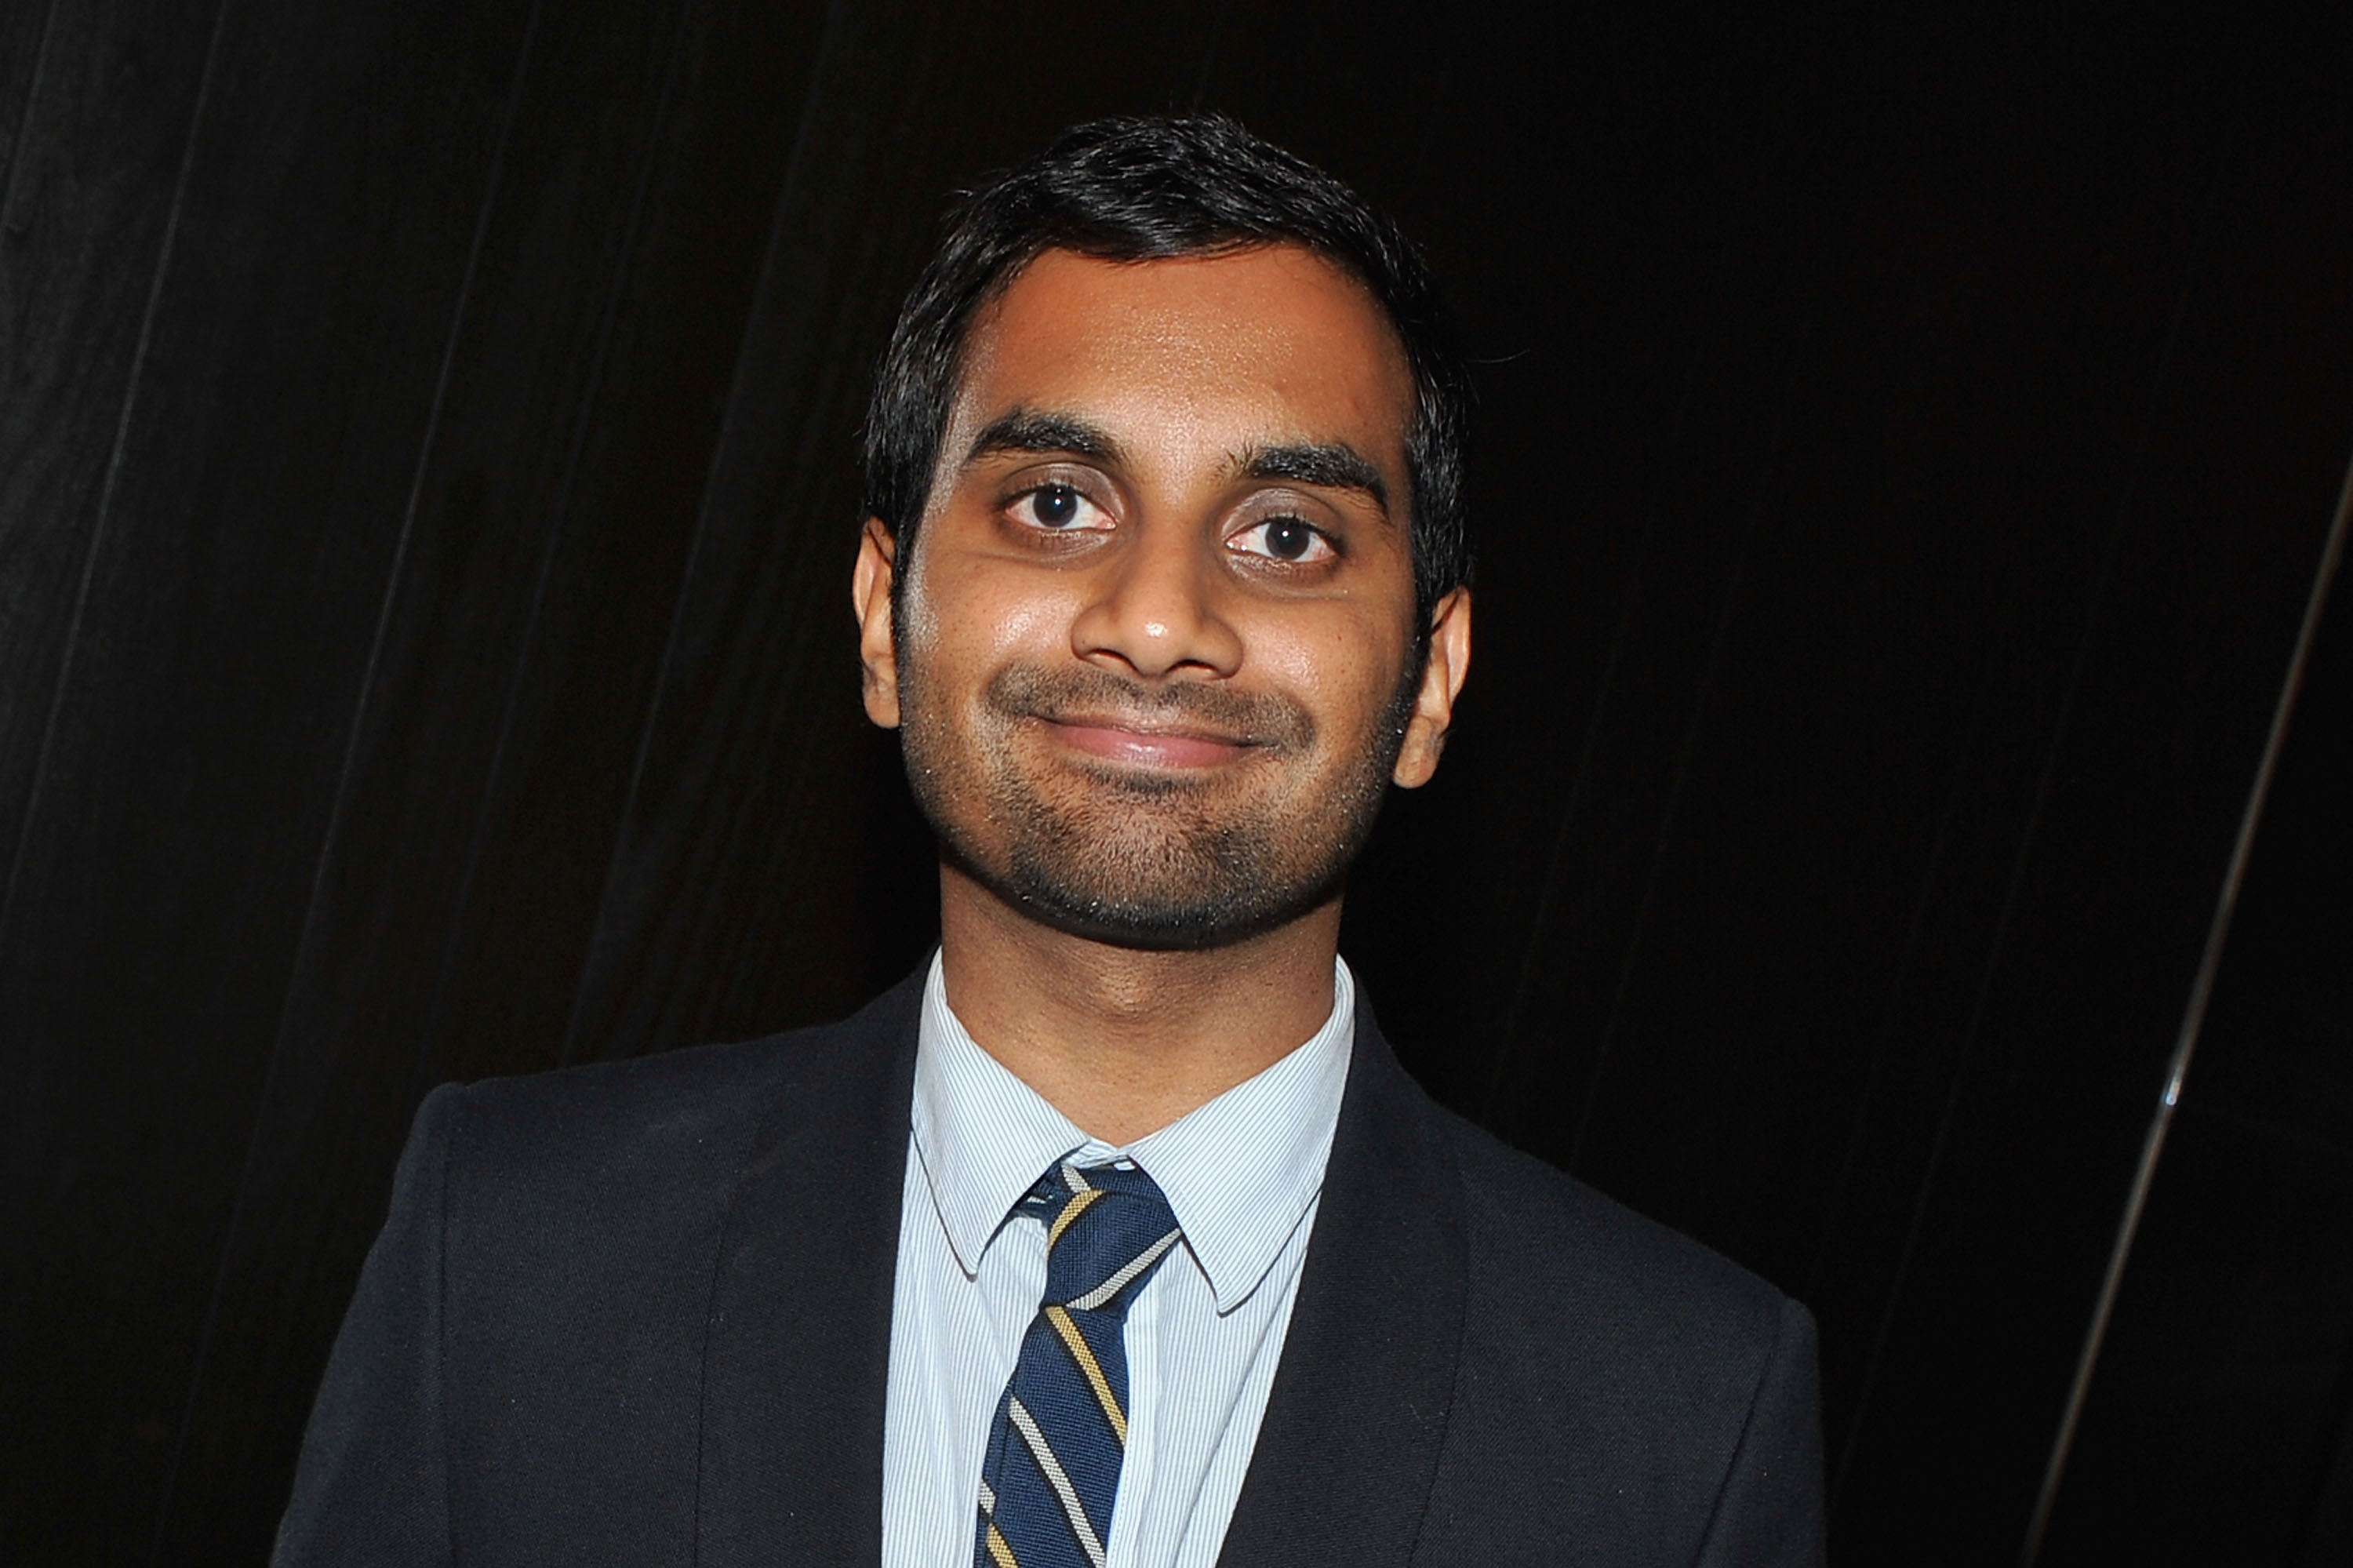 aziz ansari 4k widescreen computer wallpaper 1021